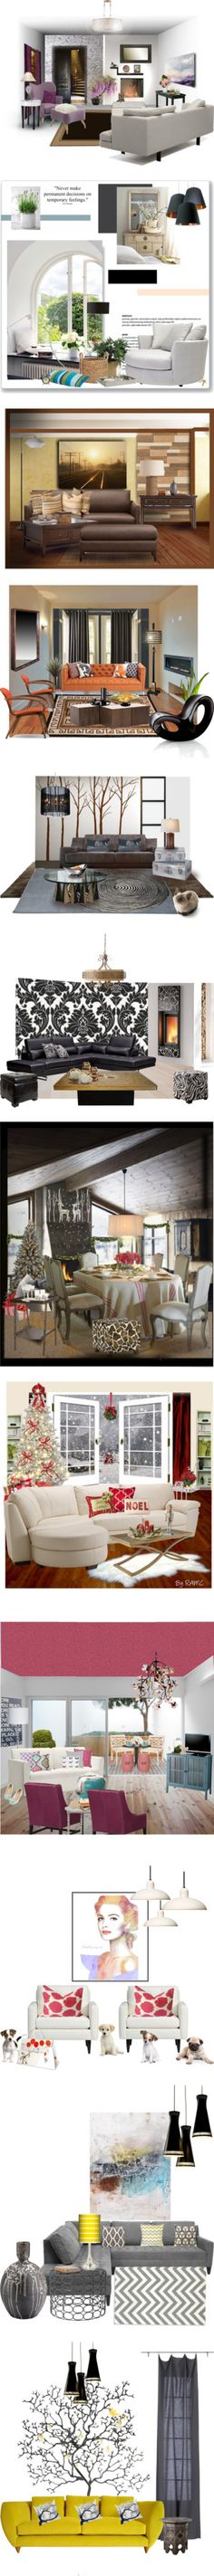 """Top Interior Design Sets for Dec 1st, 2012"" by polyvore on Polyvore"